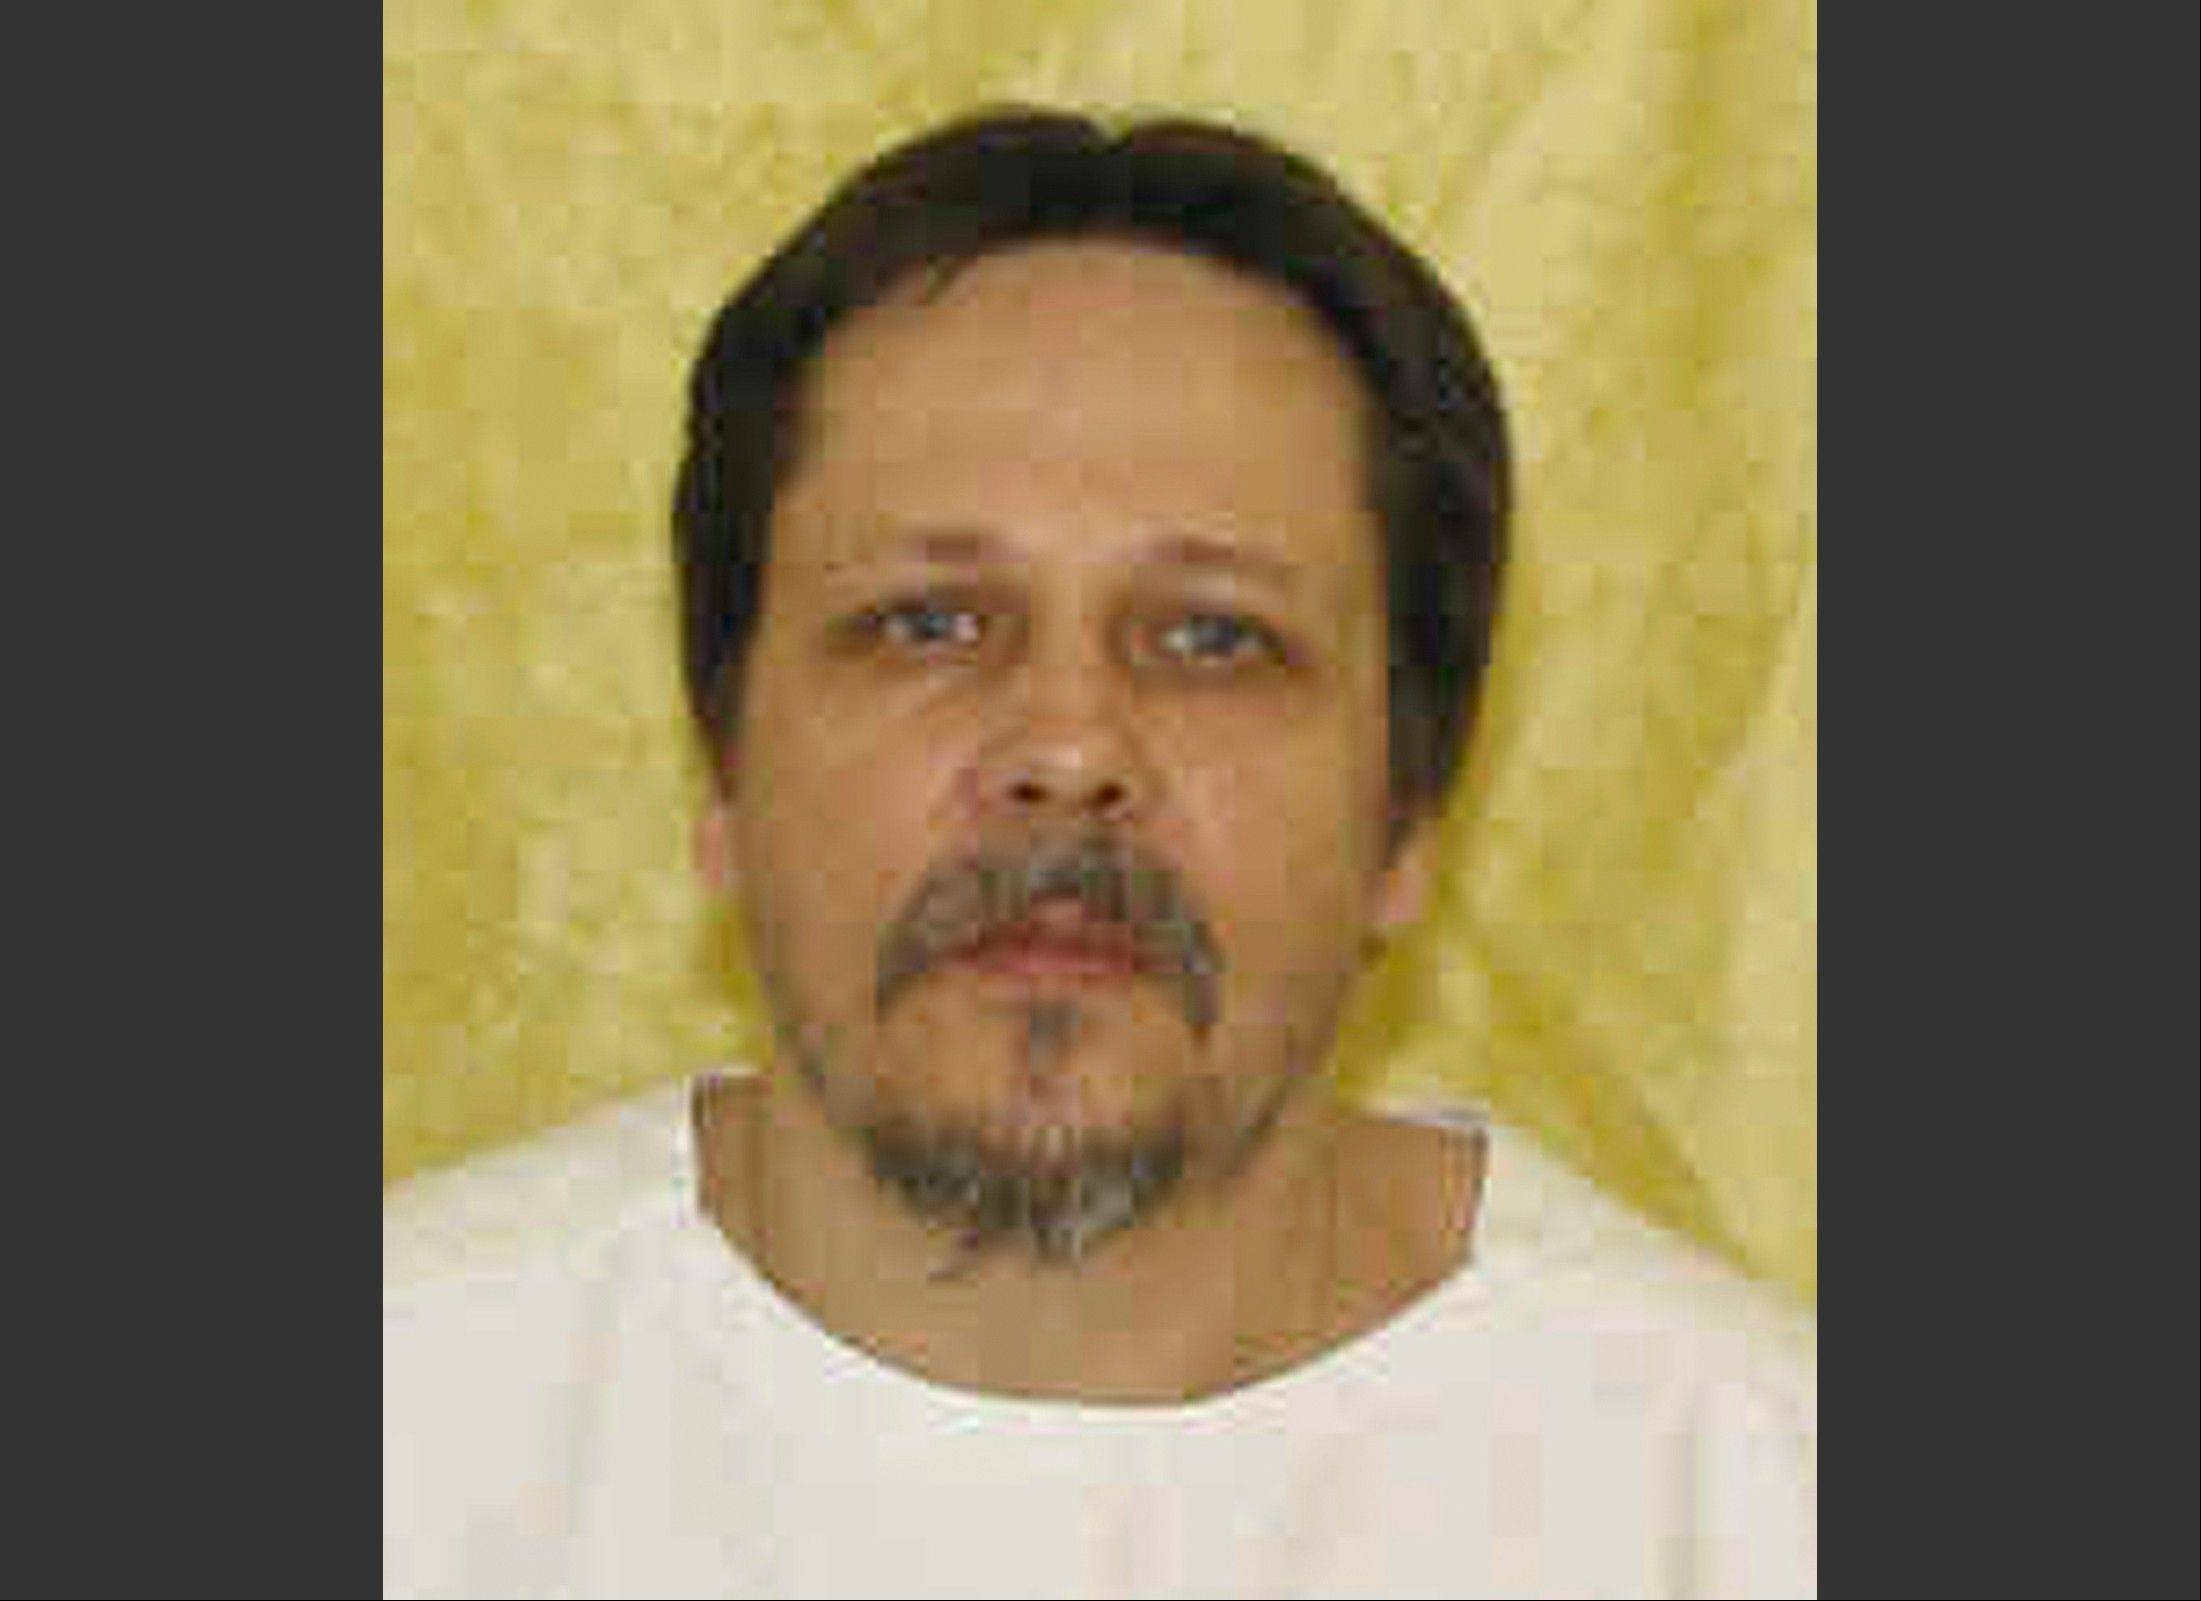 Dennis McGuire was executed Thursday, Jan. 16, 2014, by means of a two-drug lethal injection process never before tried in the United States.